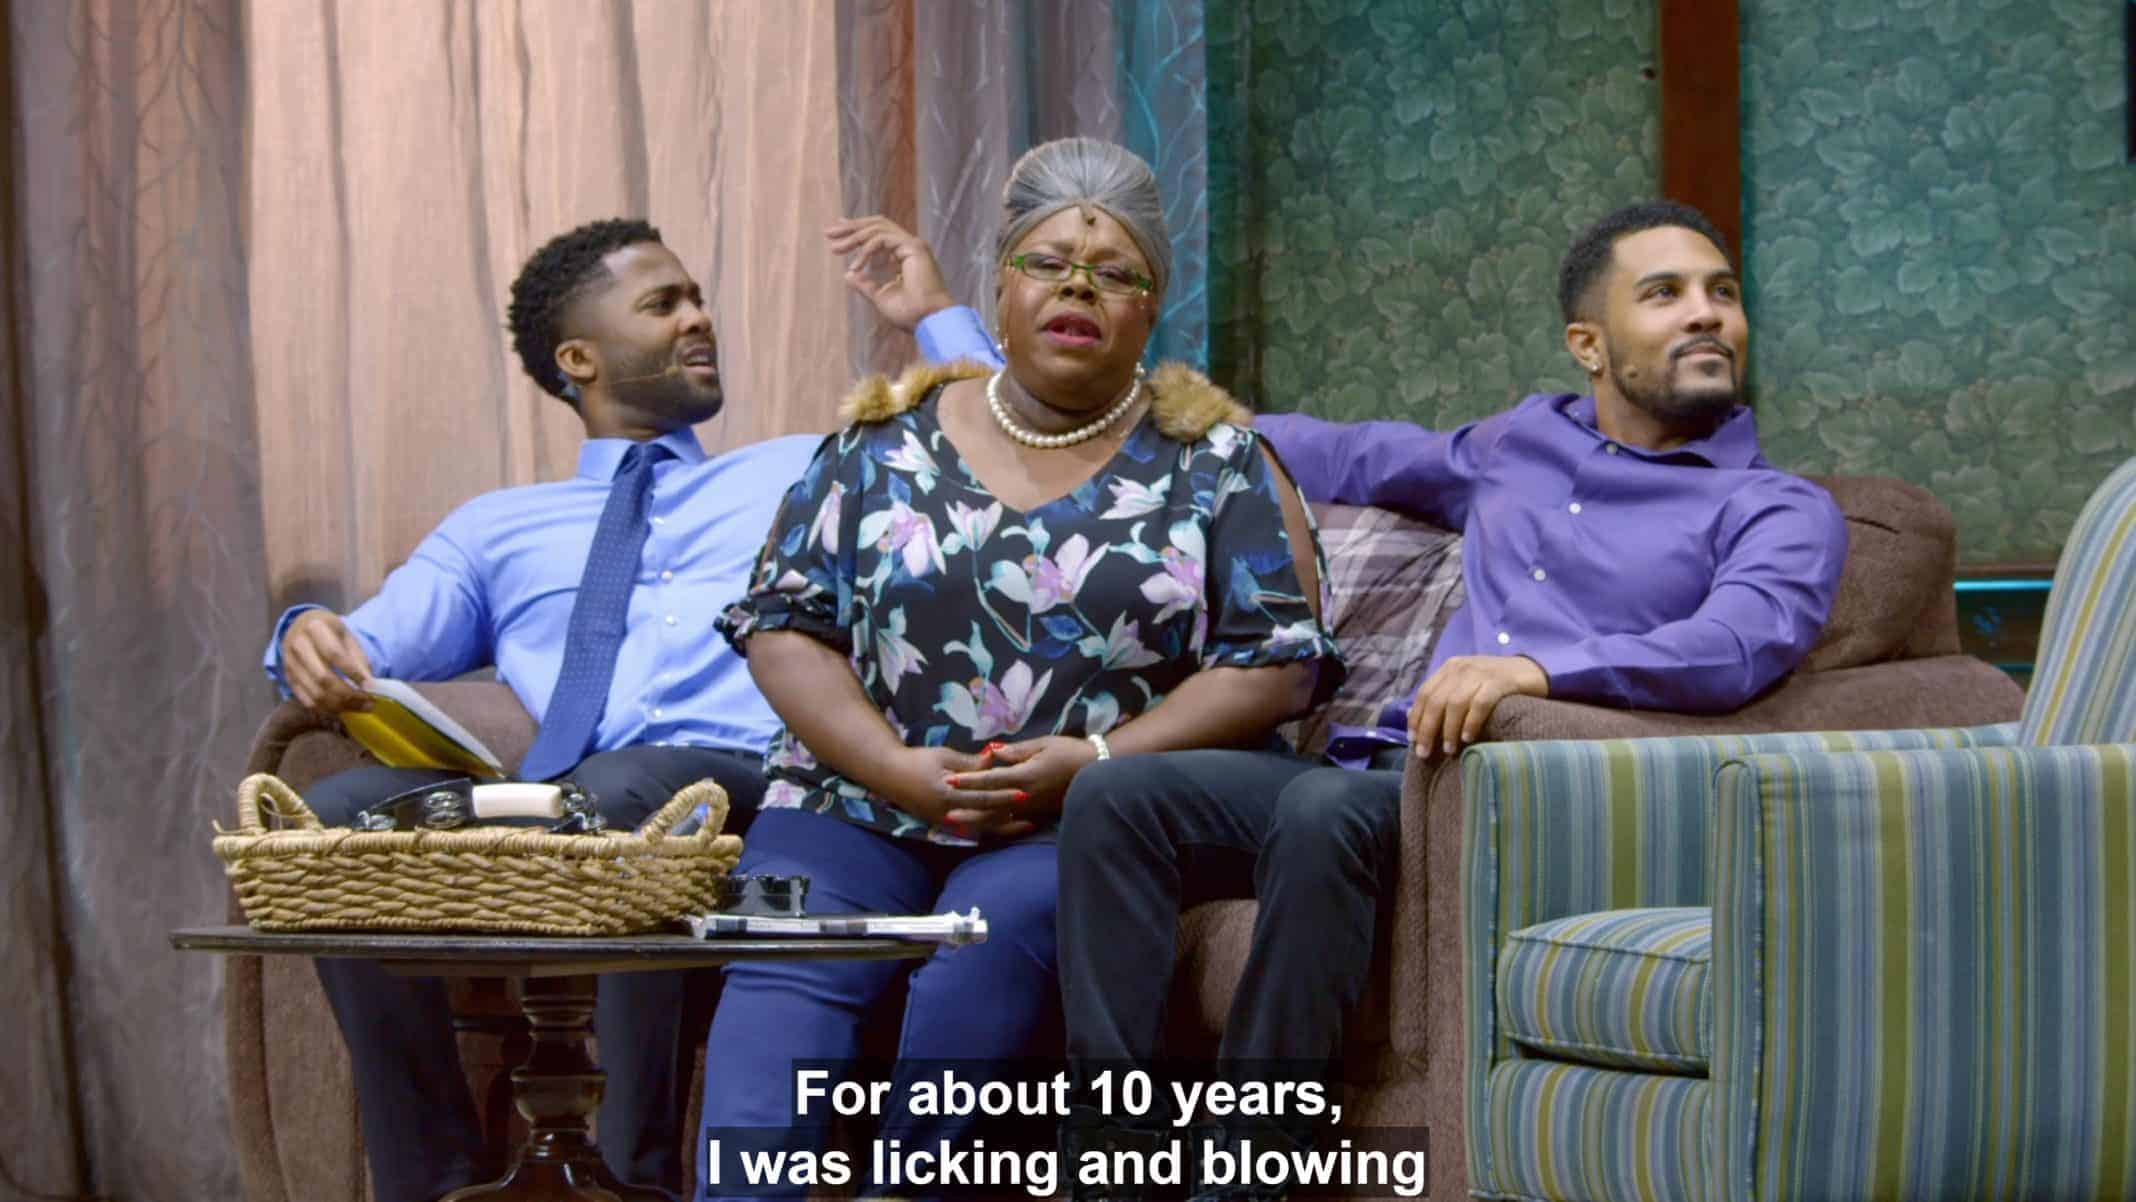 Malik (Jacoby Brown), Aunt Bam (Cassi Davis Patton), and Devin (Anthony Lewis) on the couch, while Aunt Bam talks about licking and blowing.